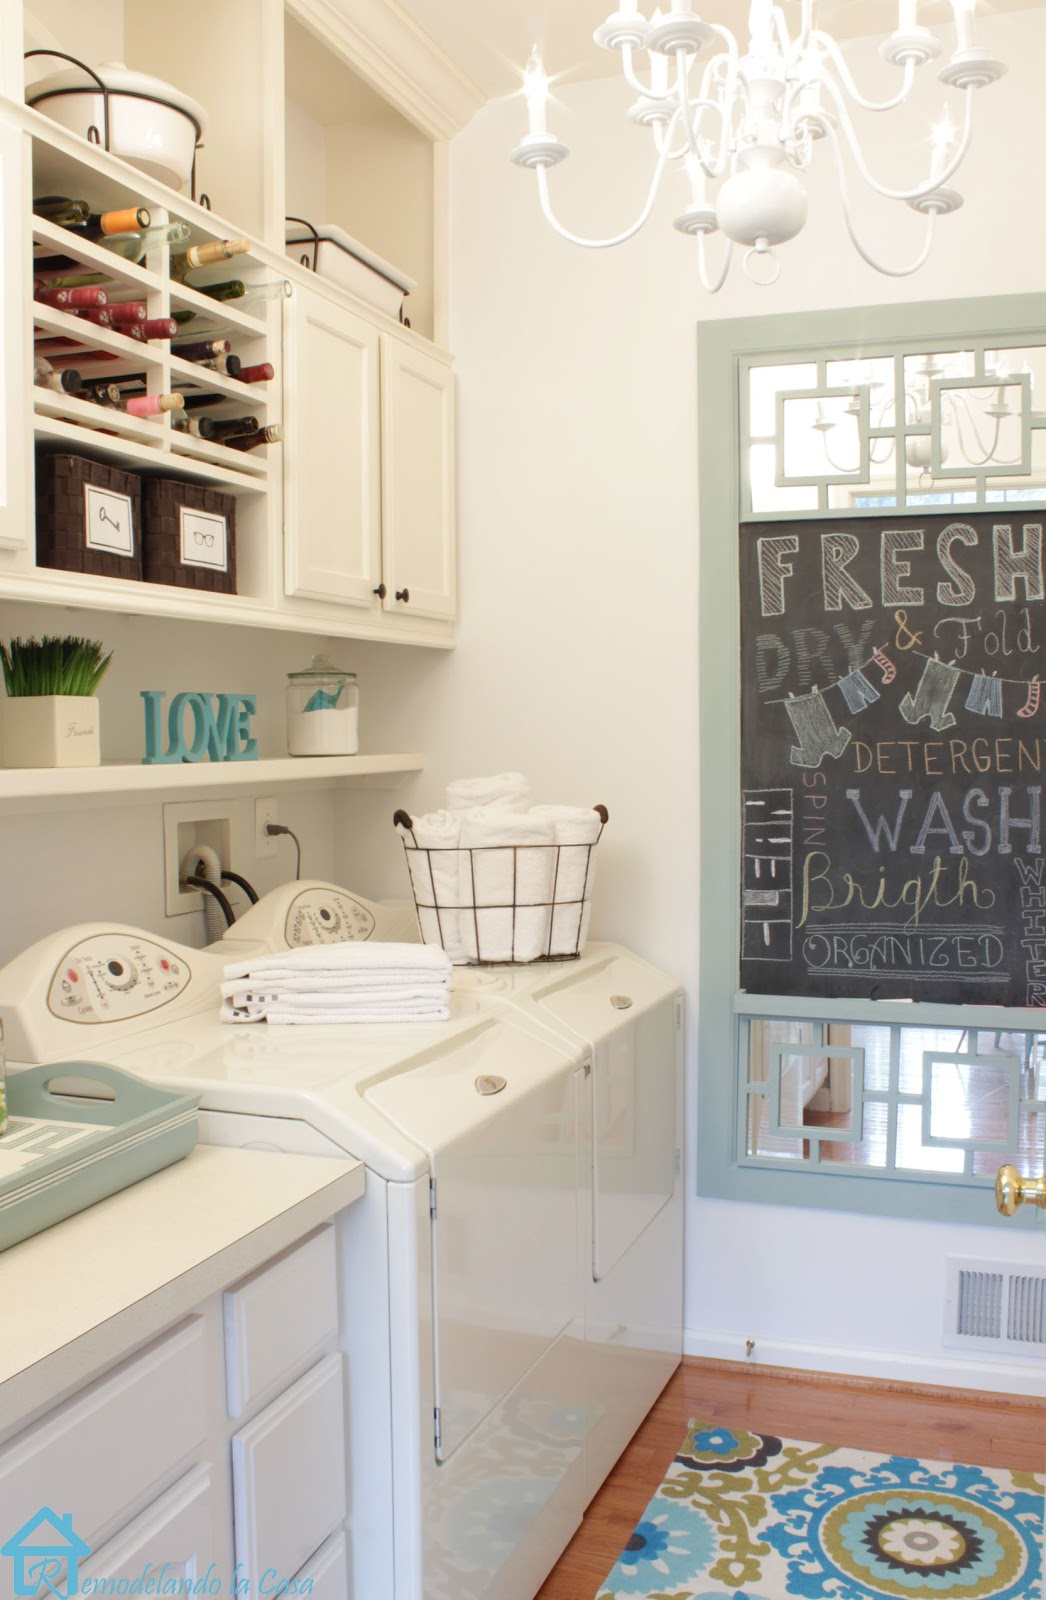 Remodelando la casa laundry room mini makeover for Room makeover